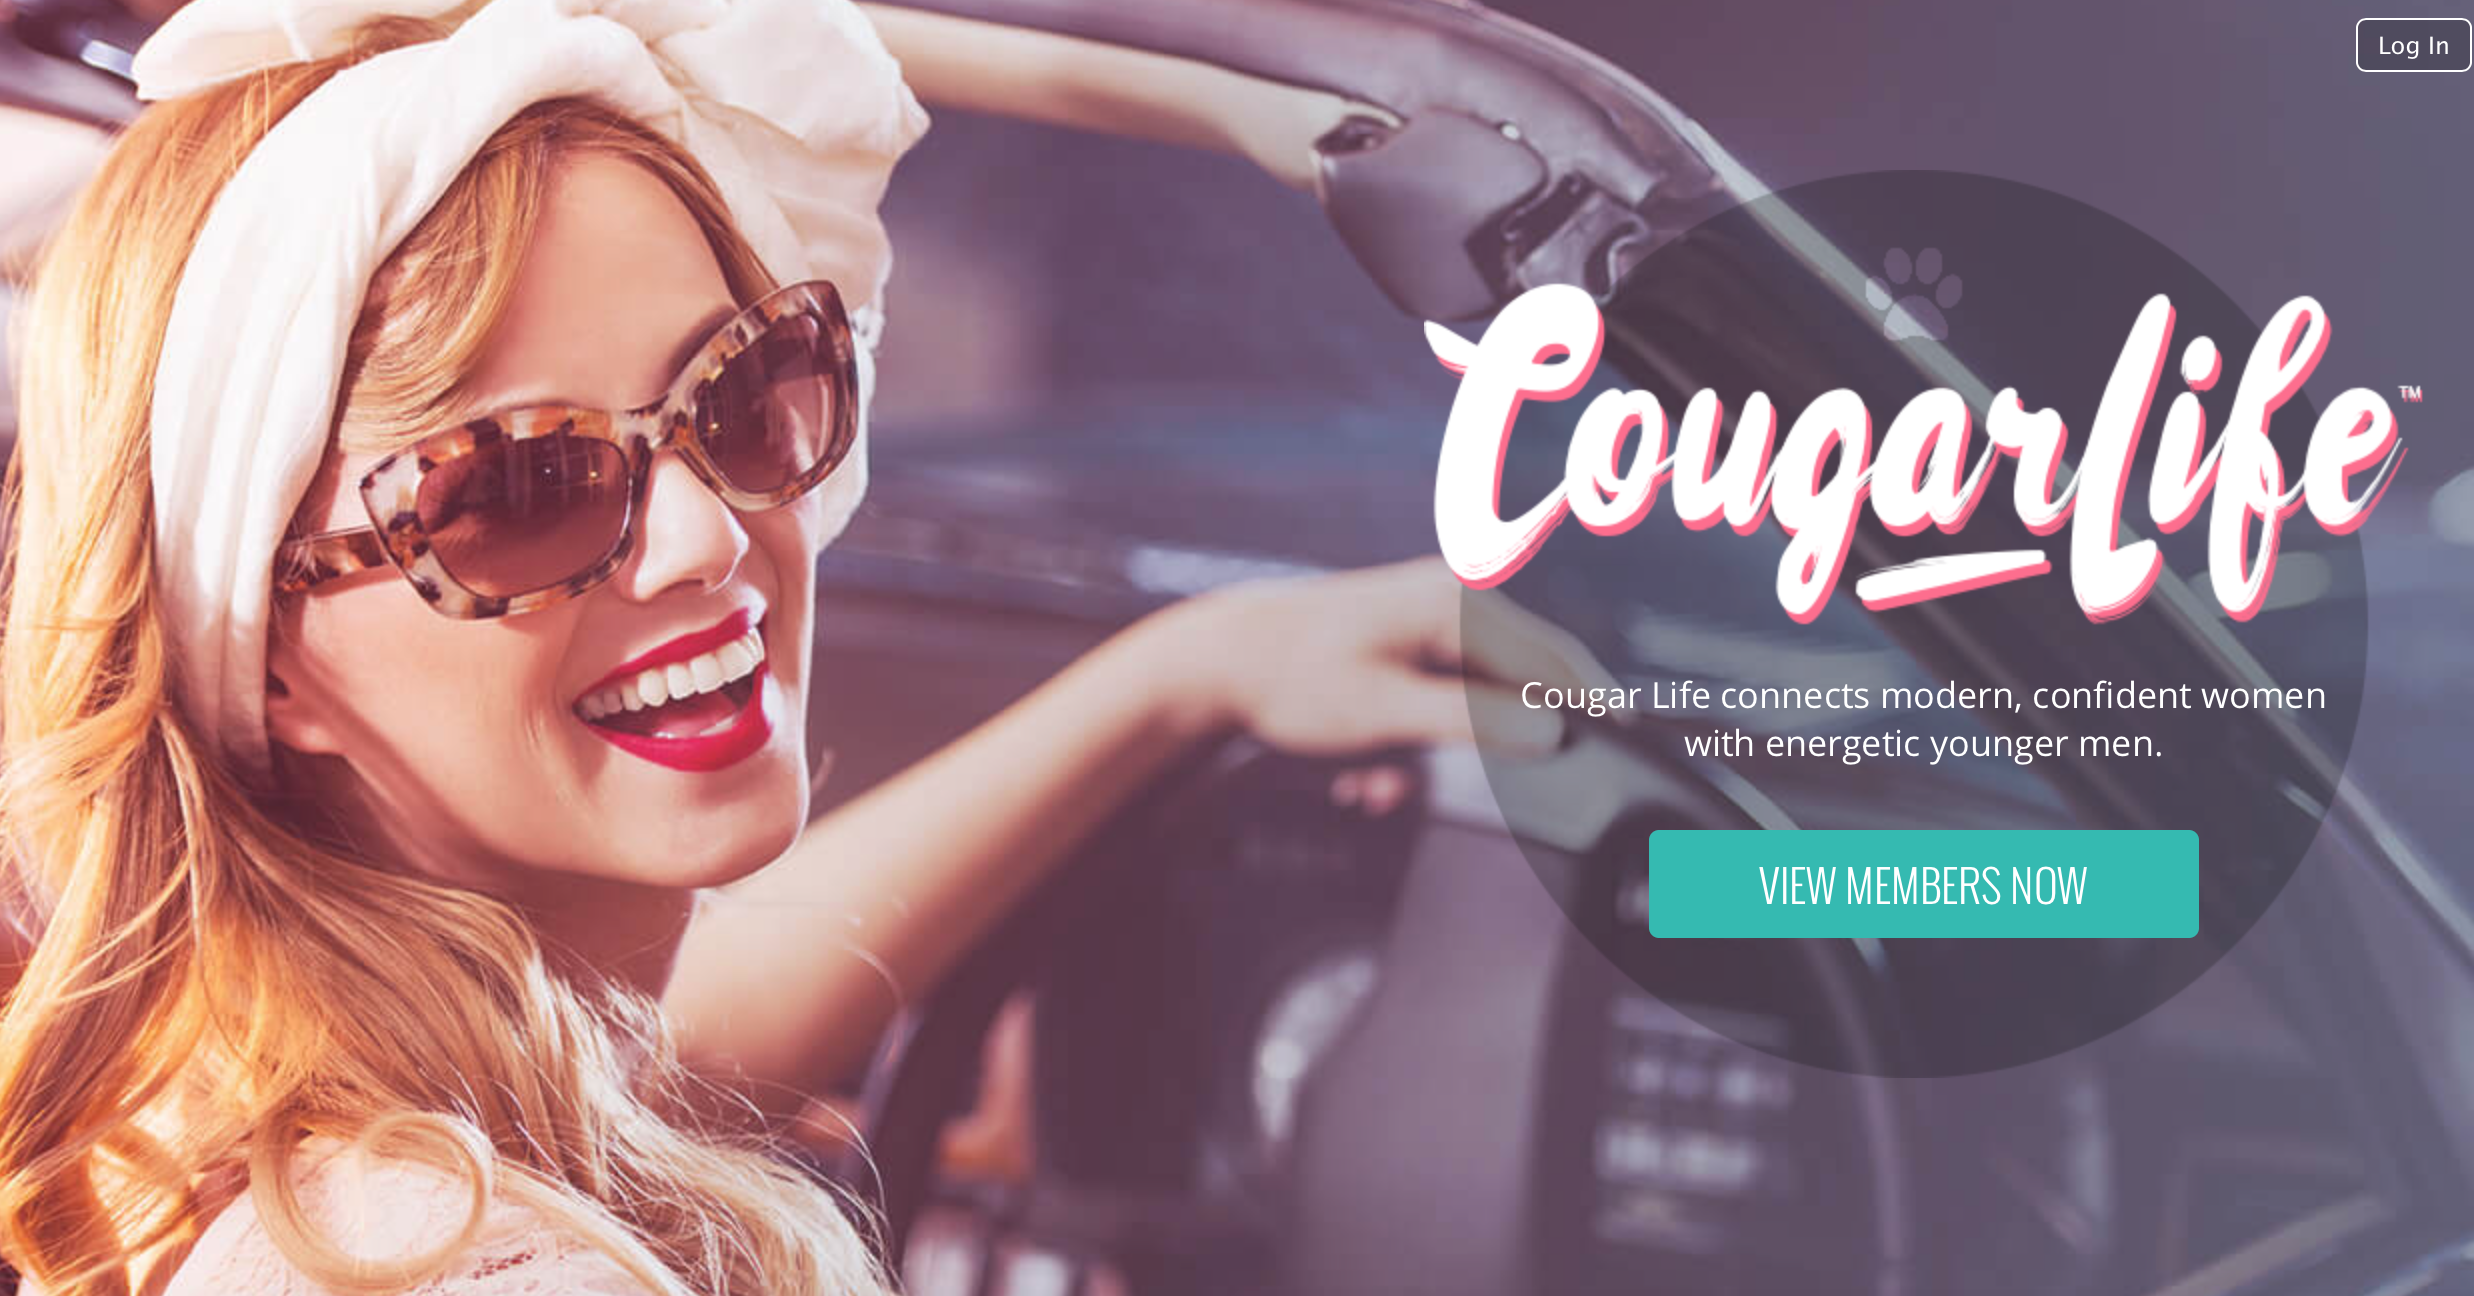 wainwright cougars dating site Using tinder to hook up with cougars (older women) is there a better app/site for this  i'm sure there are a lot more older women on actual dating sites,.